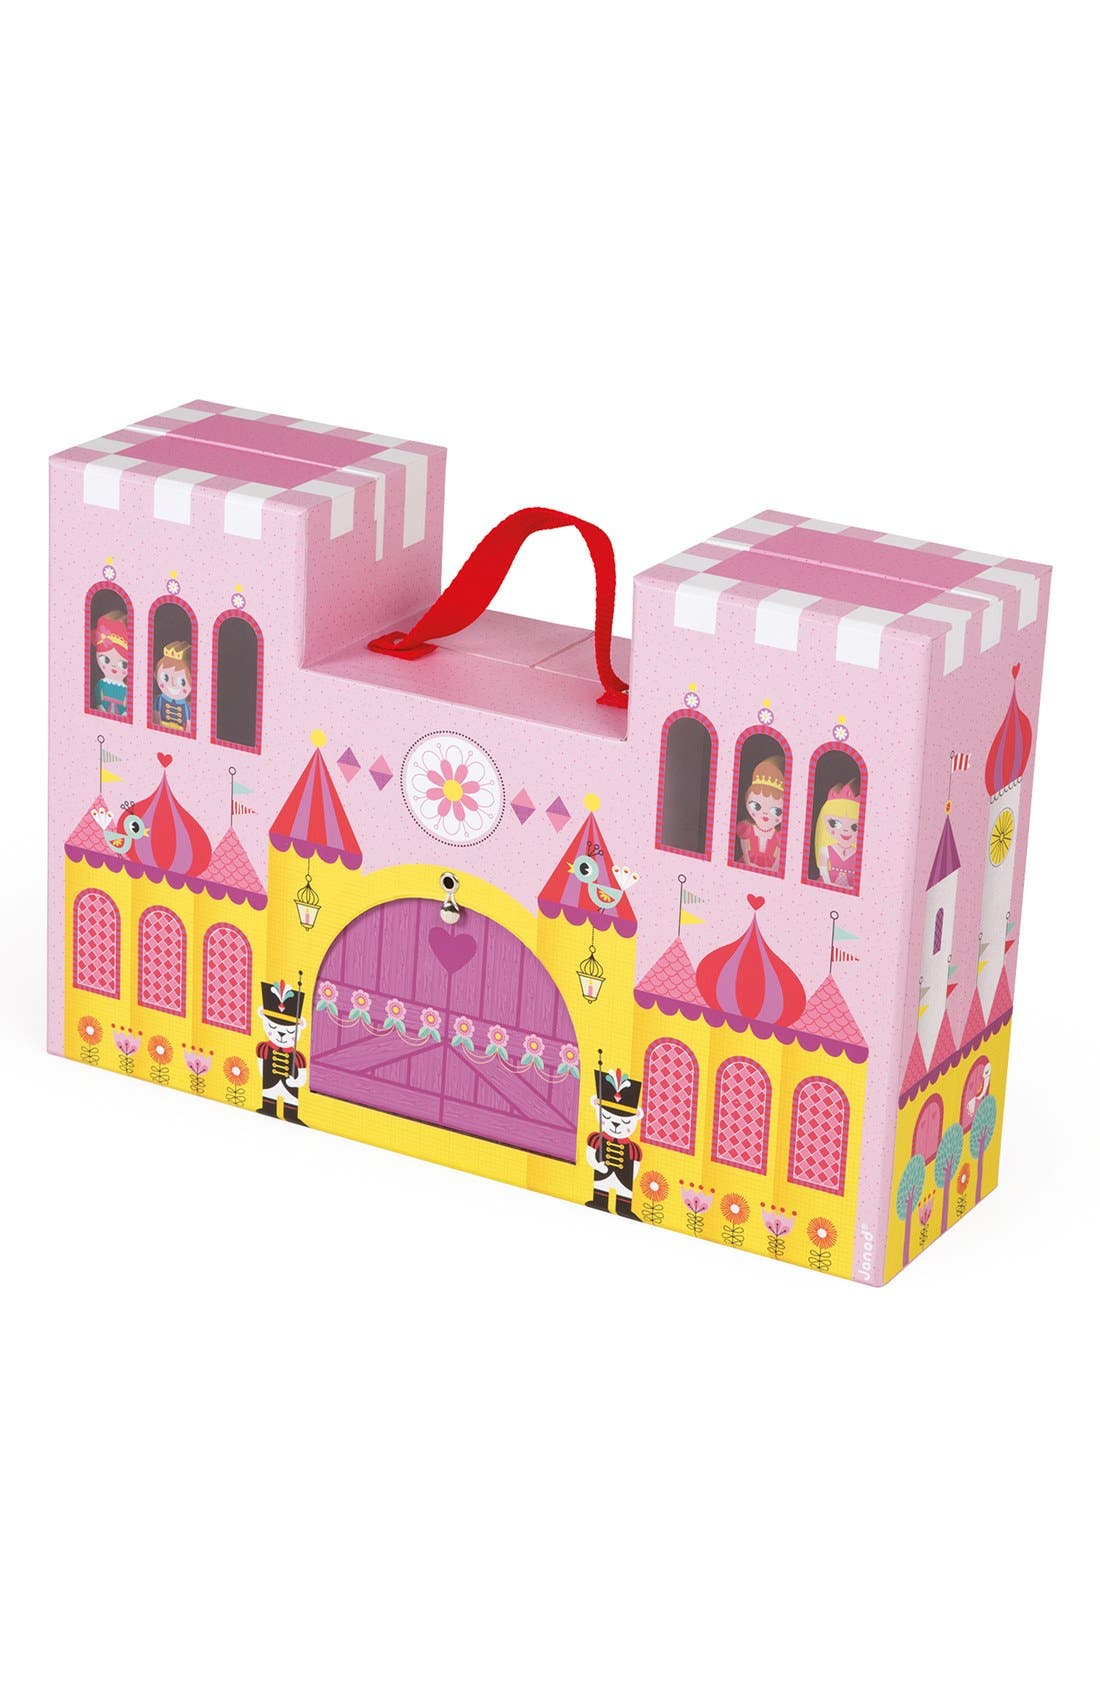 'Princess Palace' Play Set,                         Main,                         color, 960